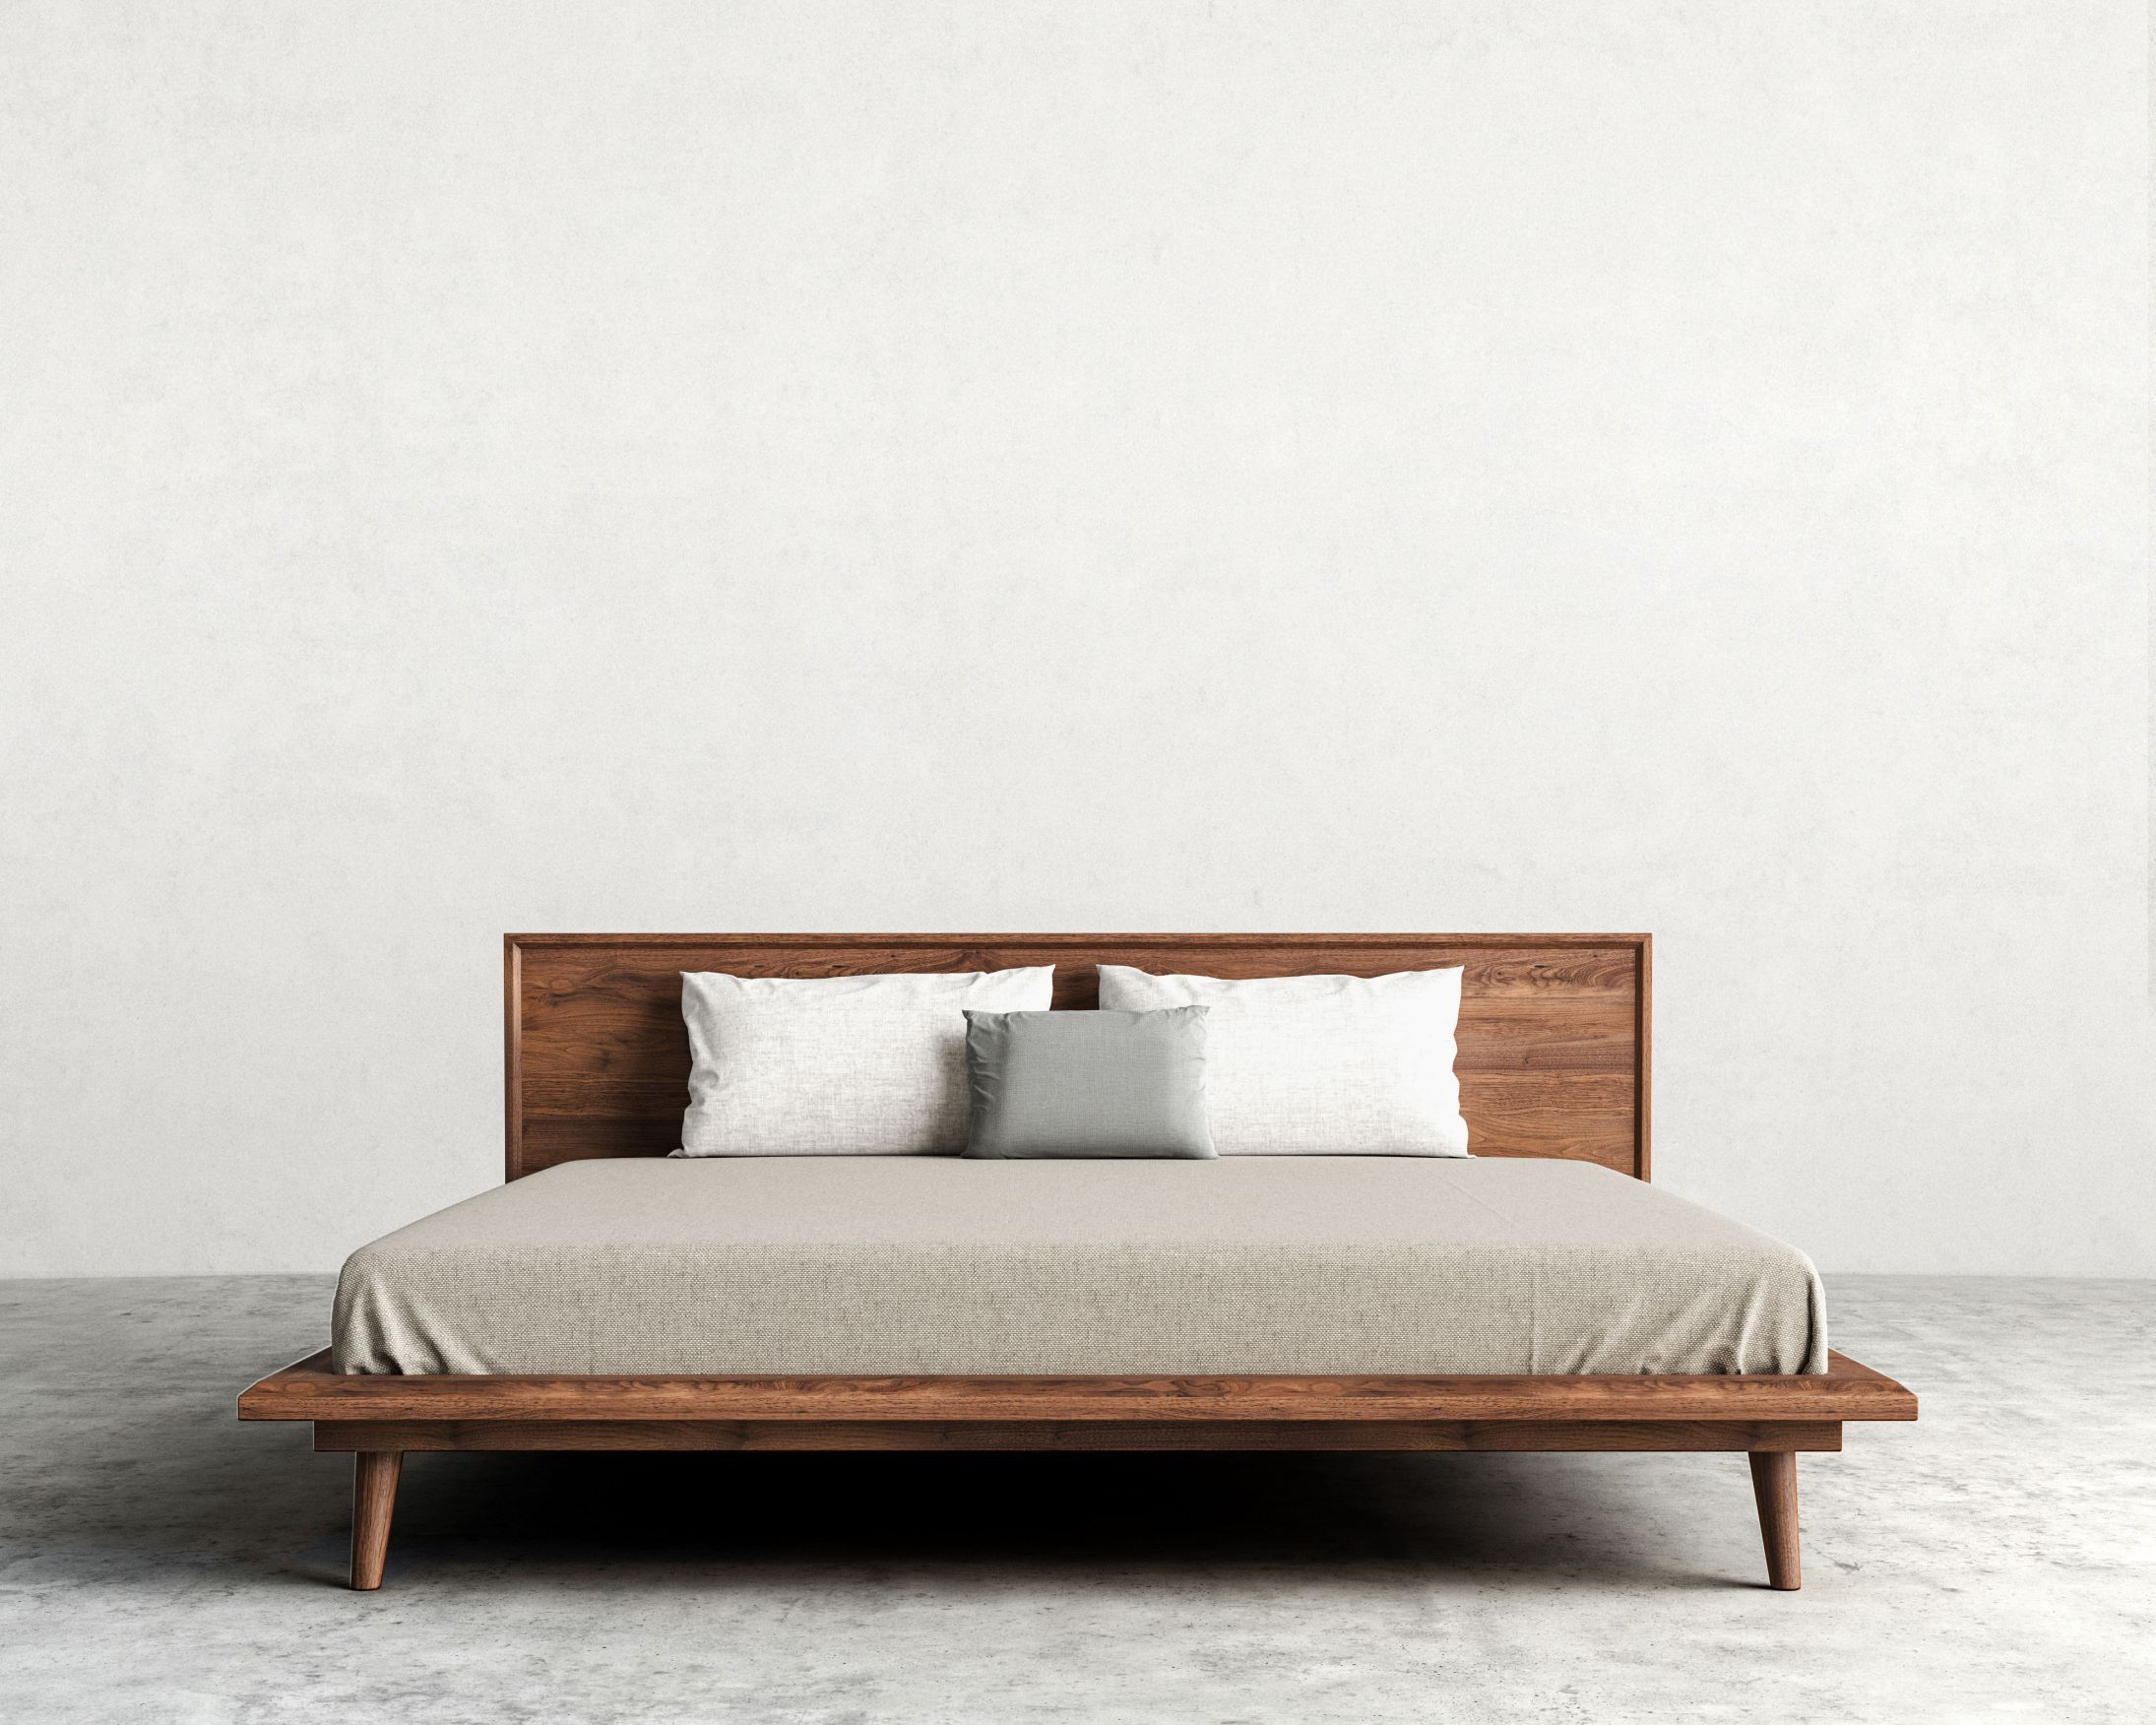 Modern Bed Frame Design Asher Bed Rove Concepts Rove Concepts Mid Century Furniture In